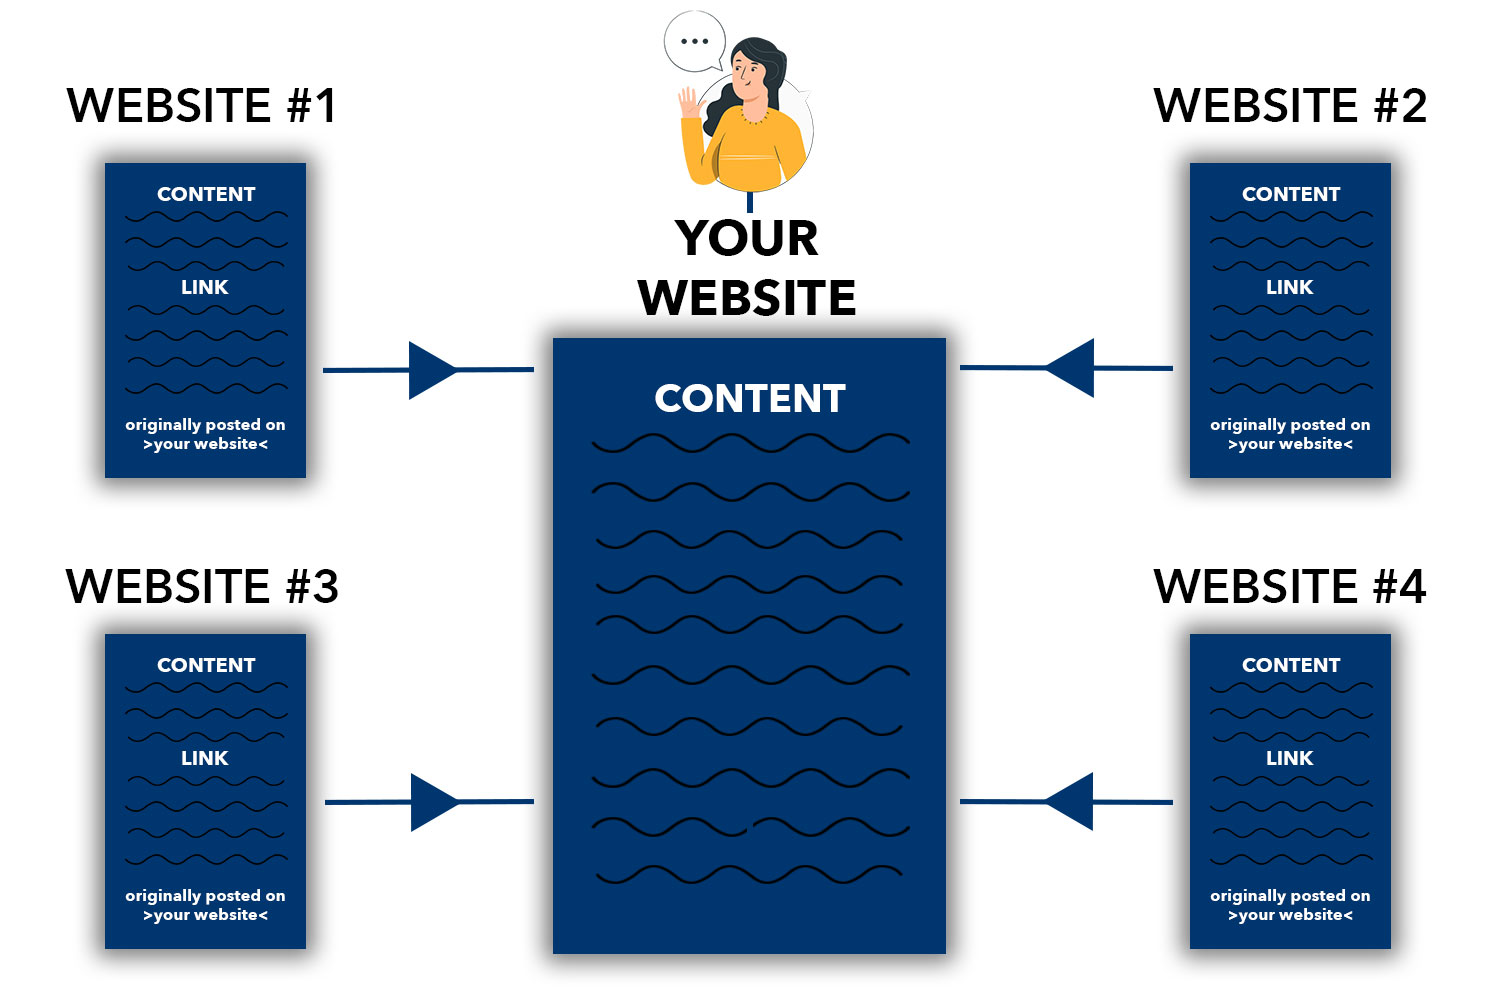 a. diagram showing how the content syndication services works for building backlinks